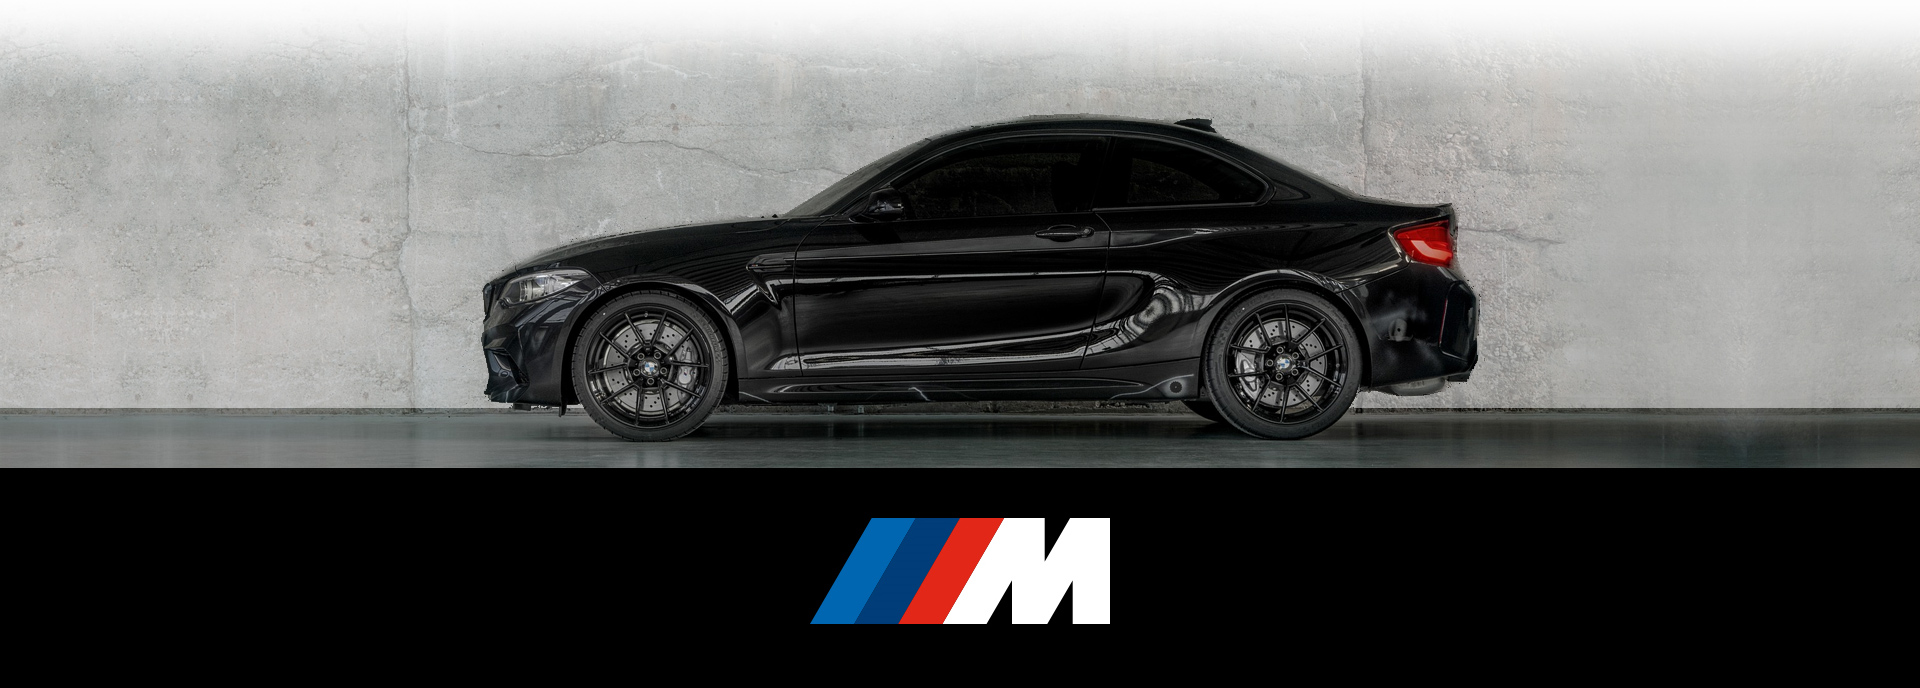 2020 BMW M2 BY FUTURA Profile with BMW M Logo